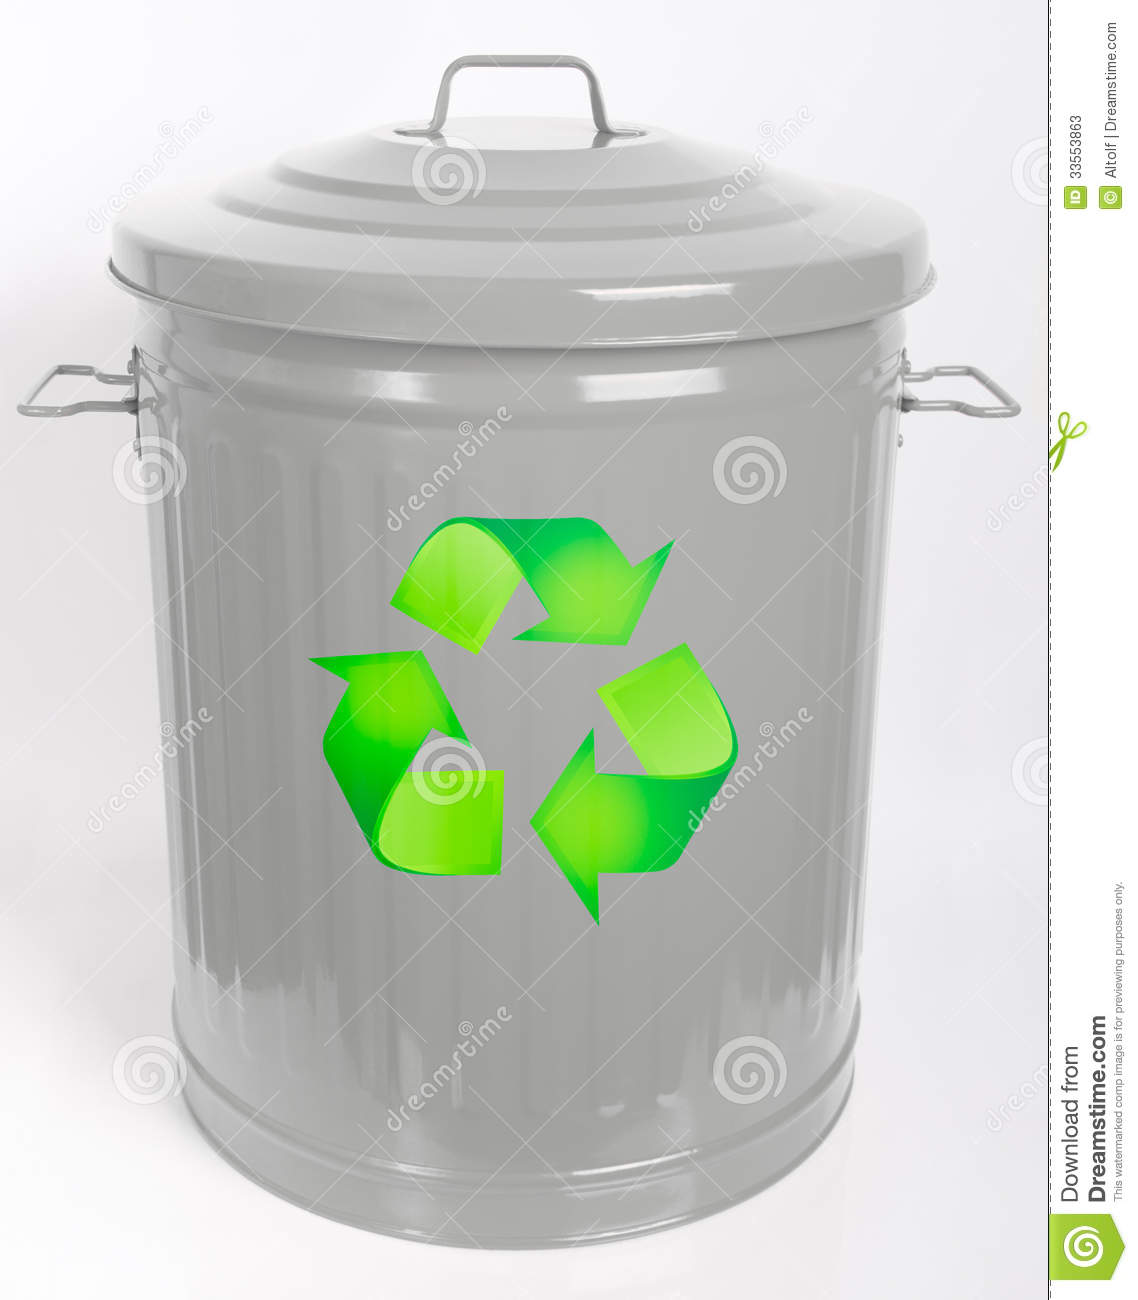 Dustbin Recycle Stock Photos Image 33553863